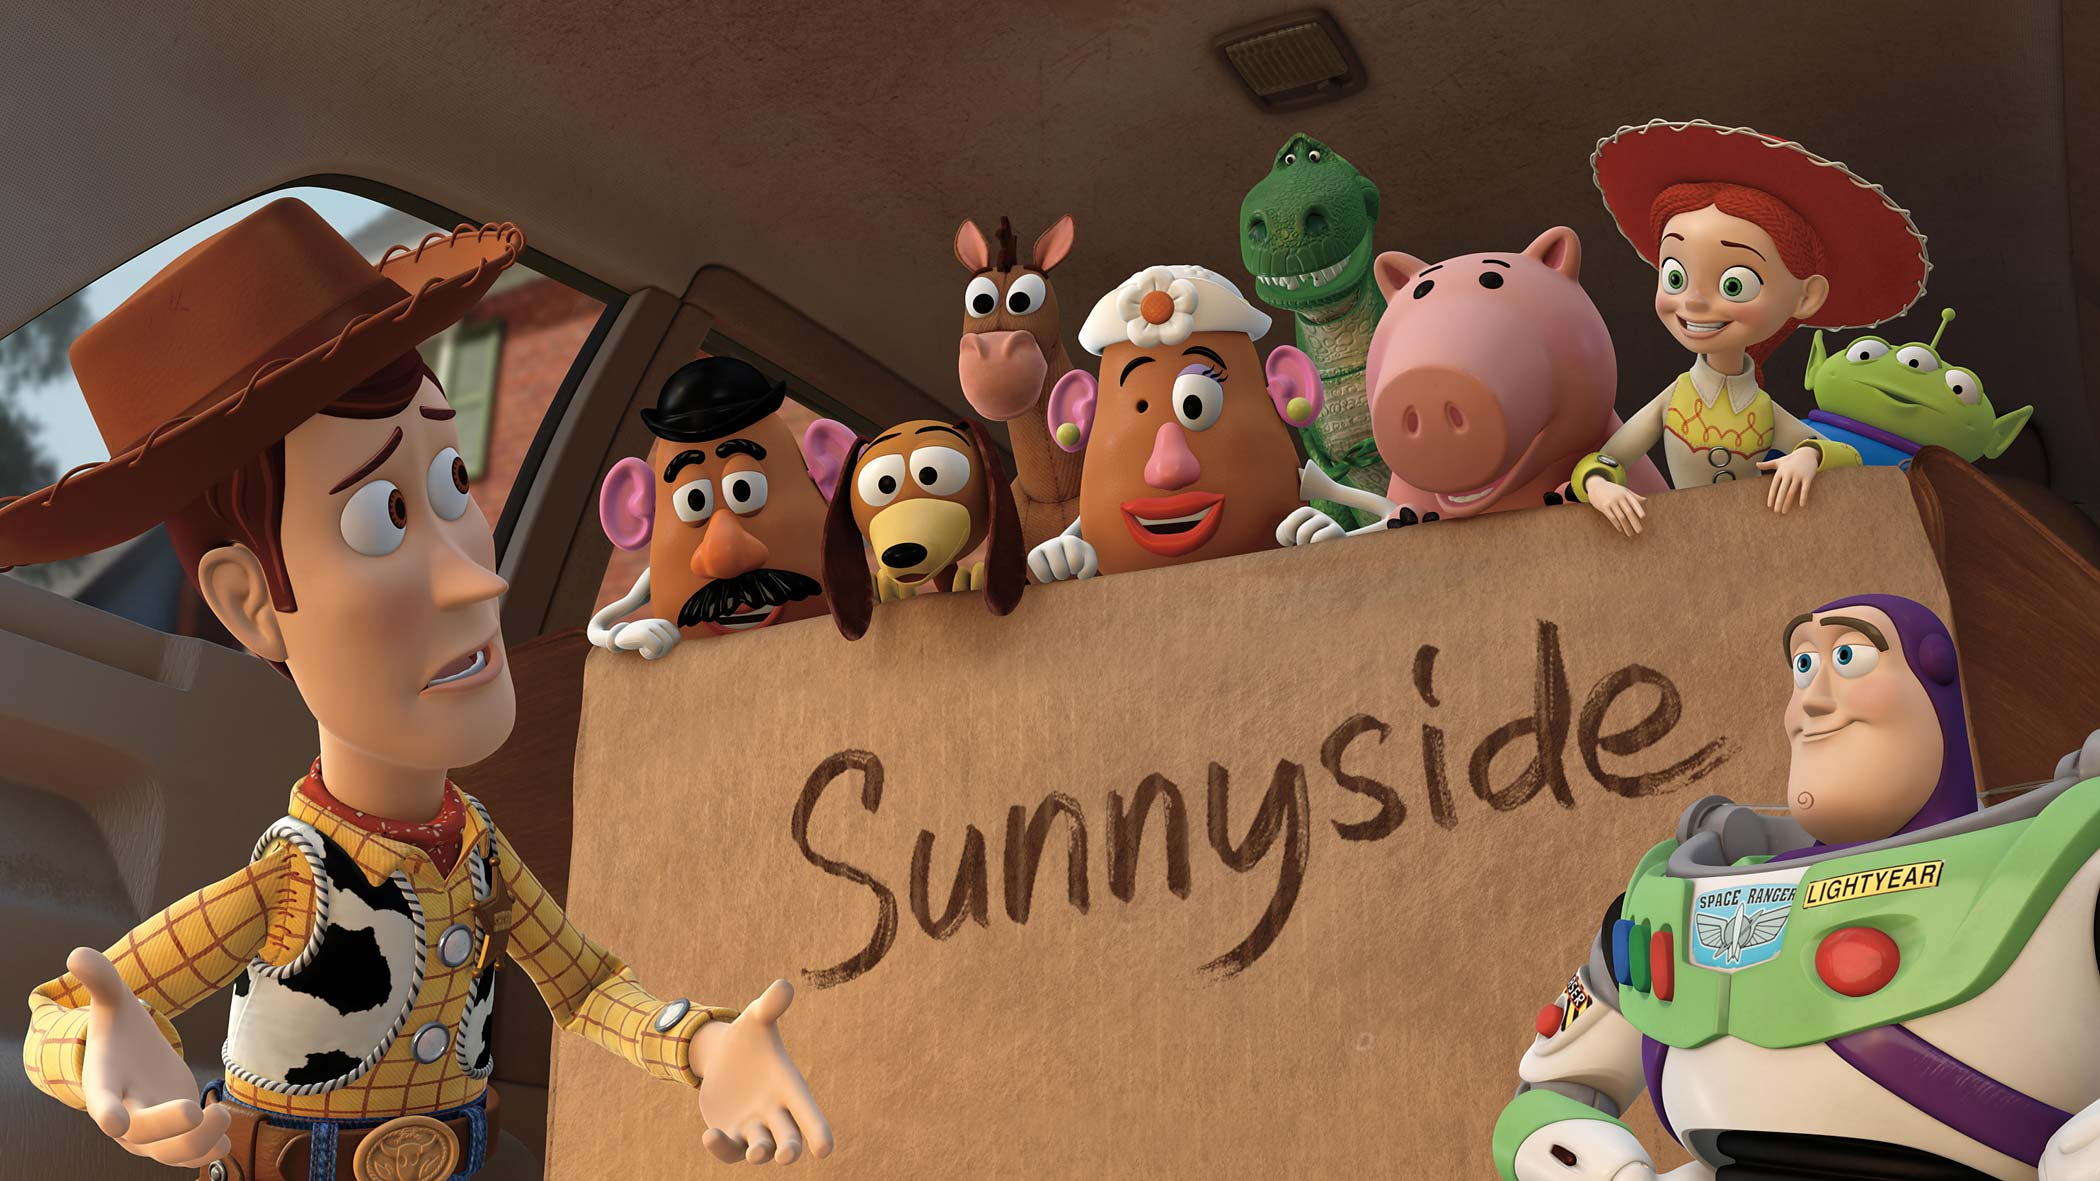 Toy Story 3 recreated with real toys by two brothers soon to be released.